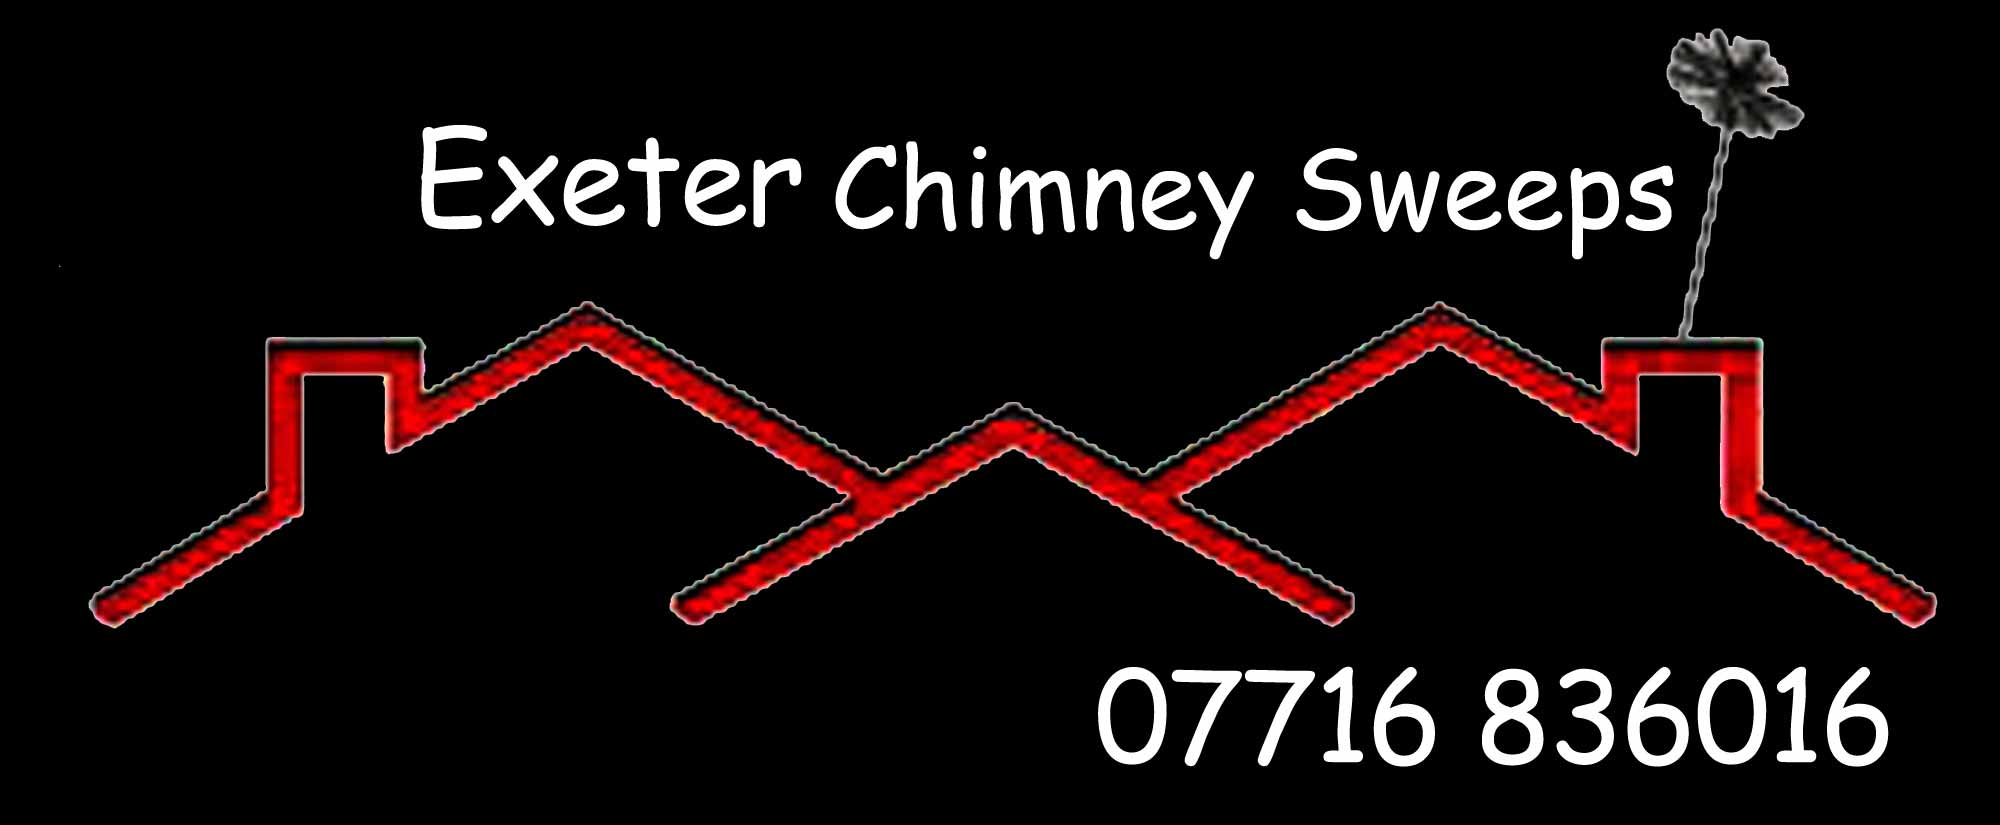 Chimney Sweep Exeter